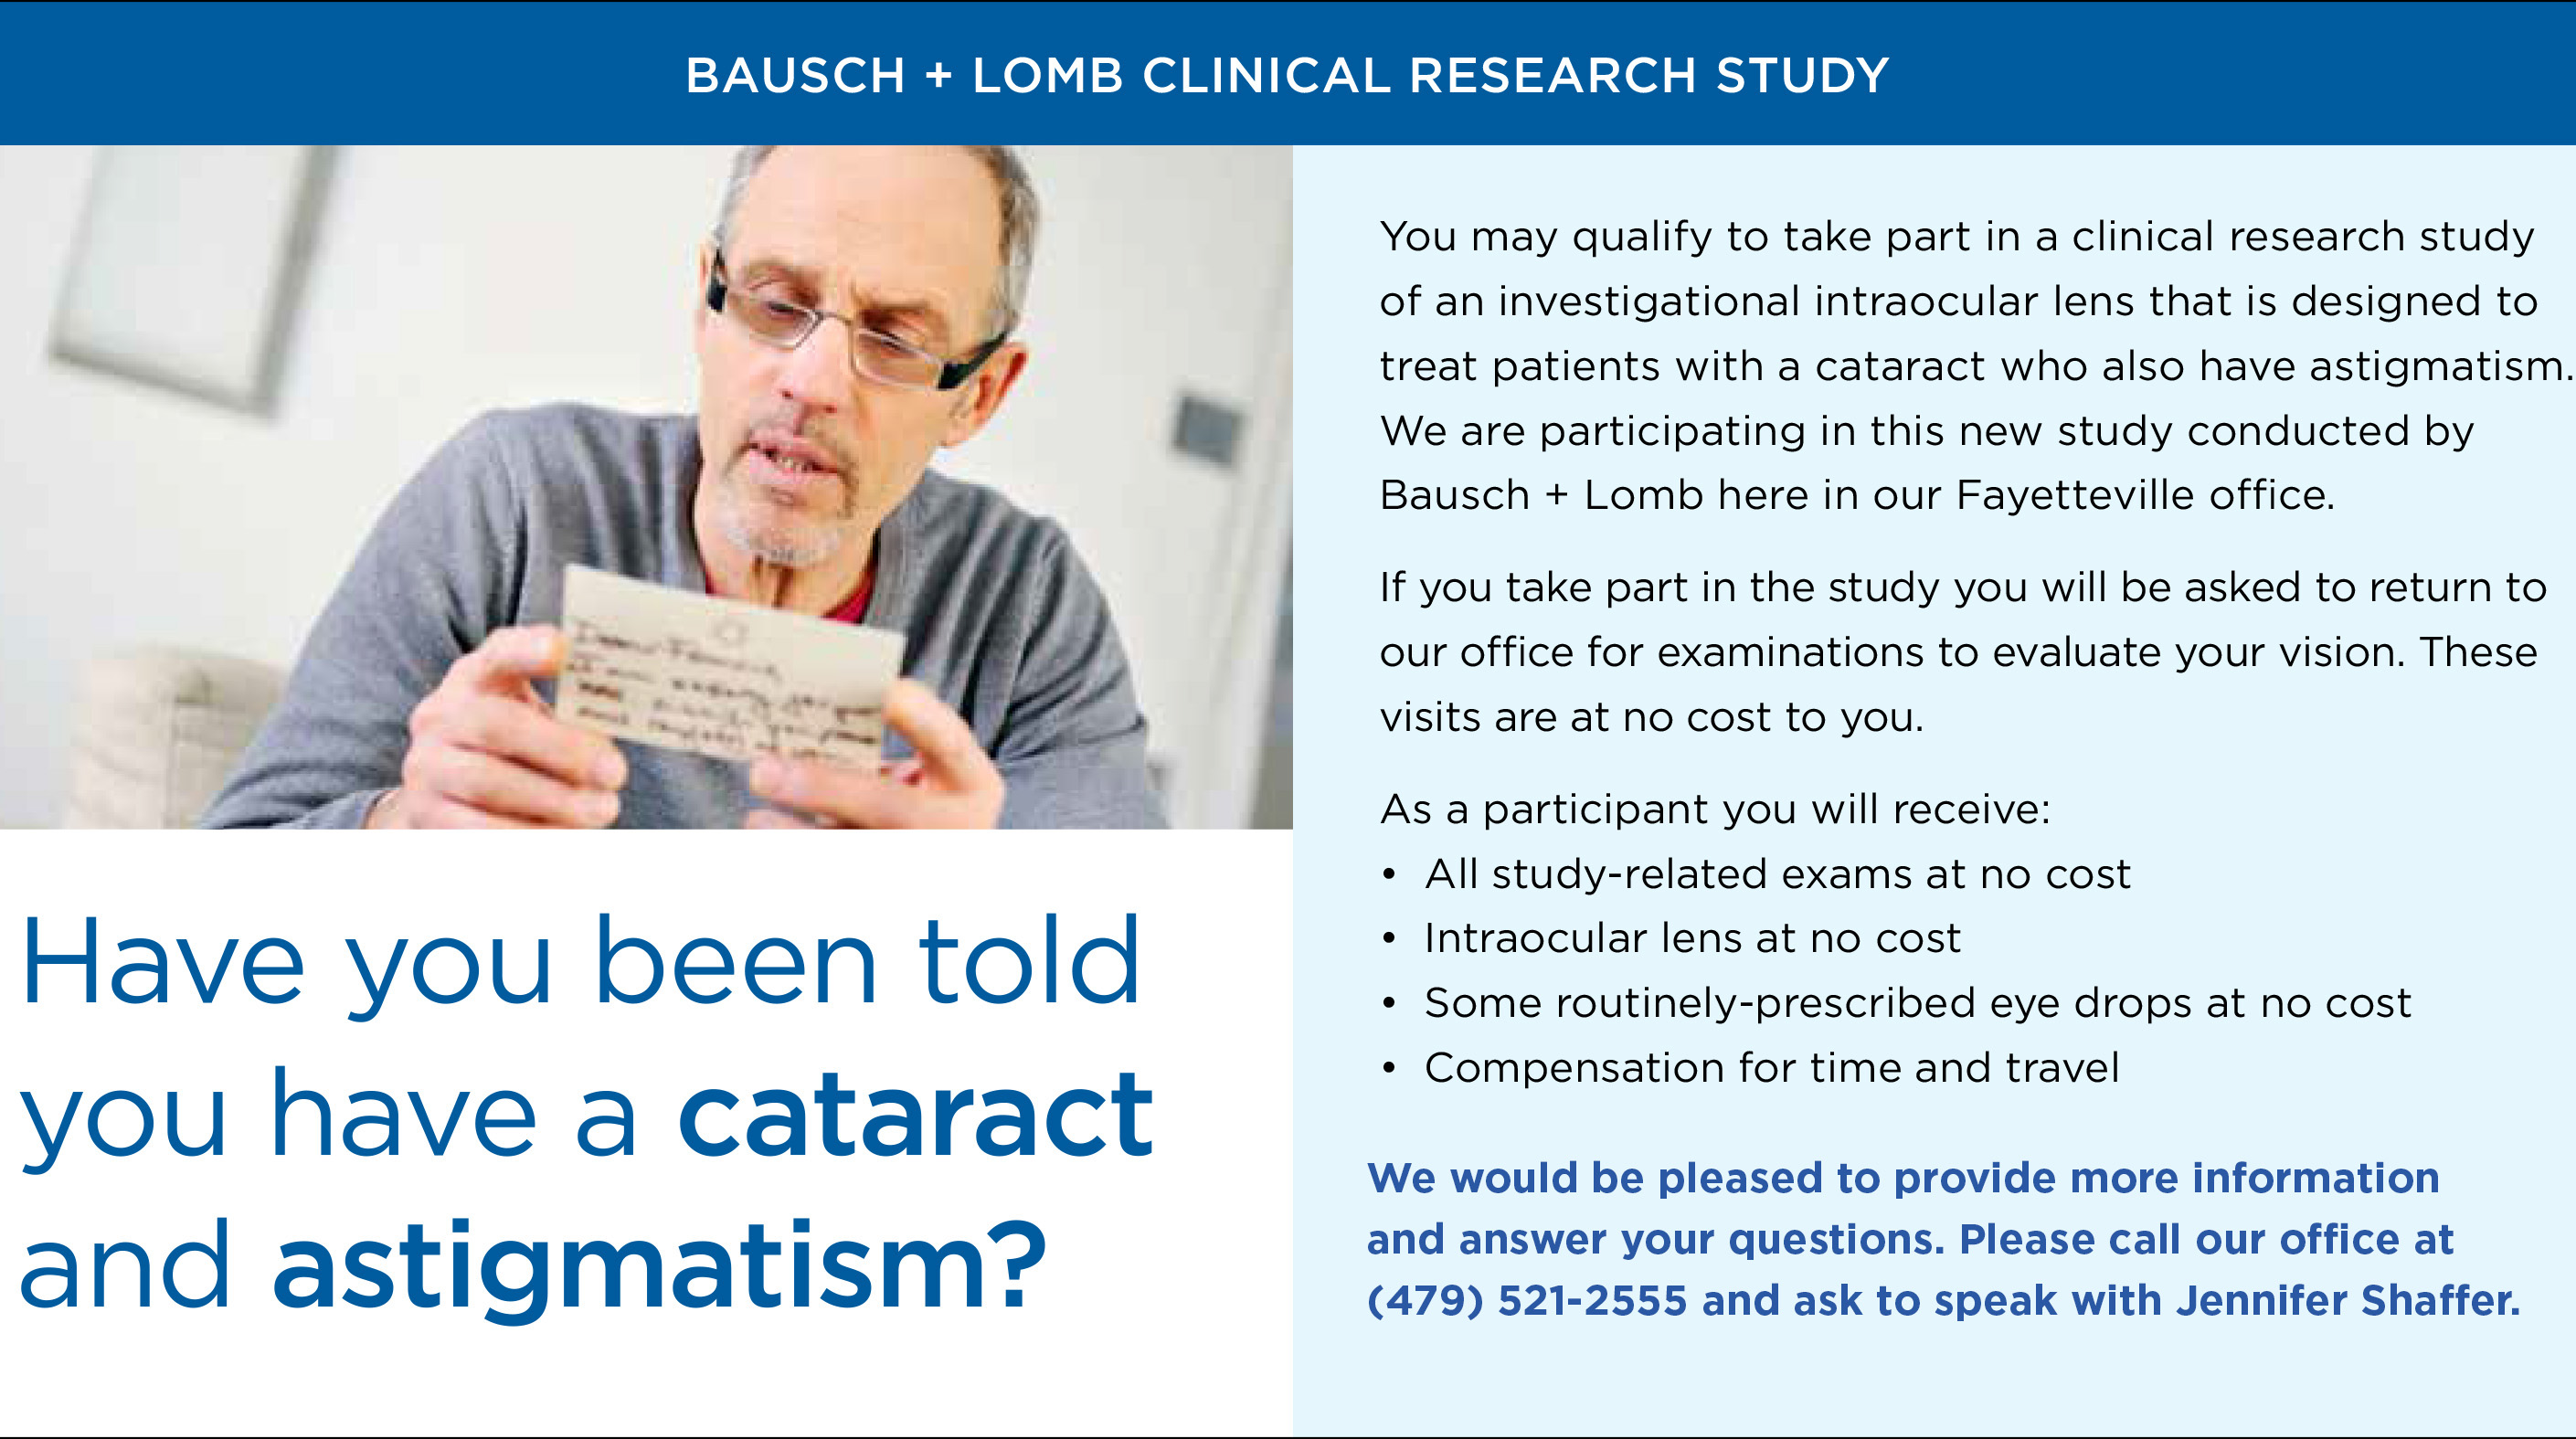 Bausch + Lomb Research Study Infographic